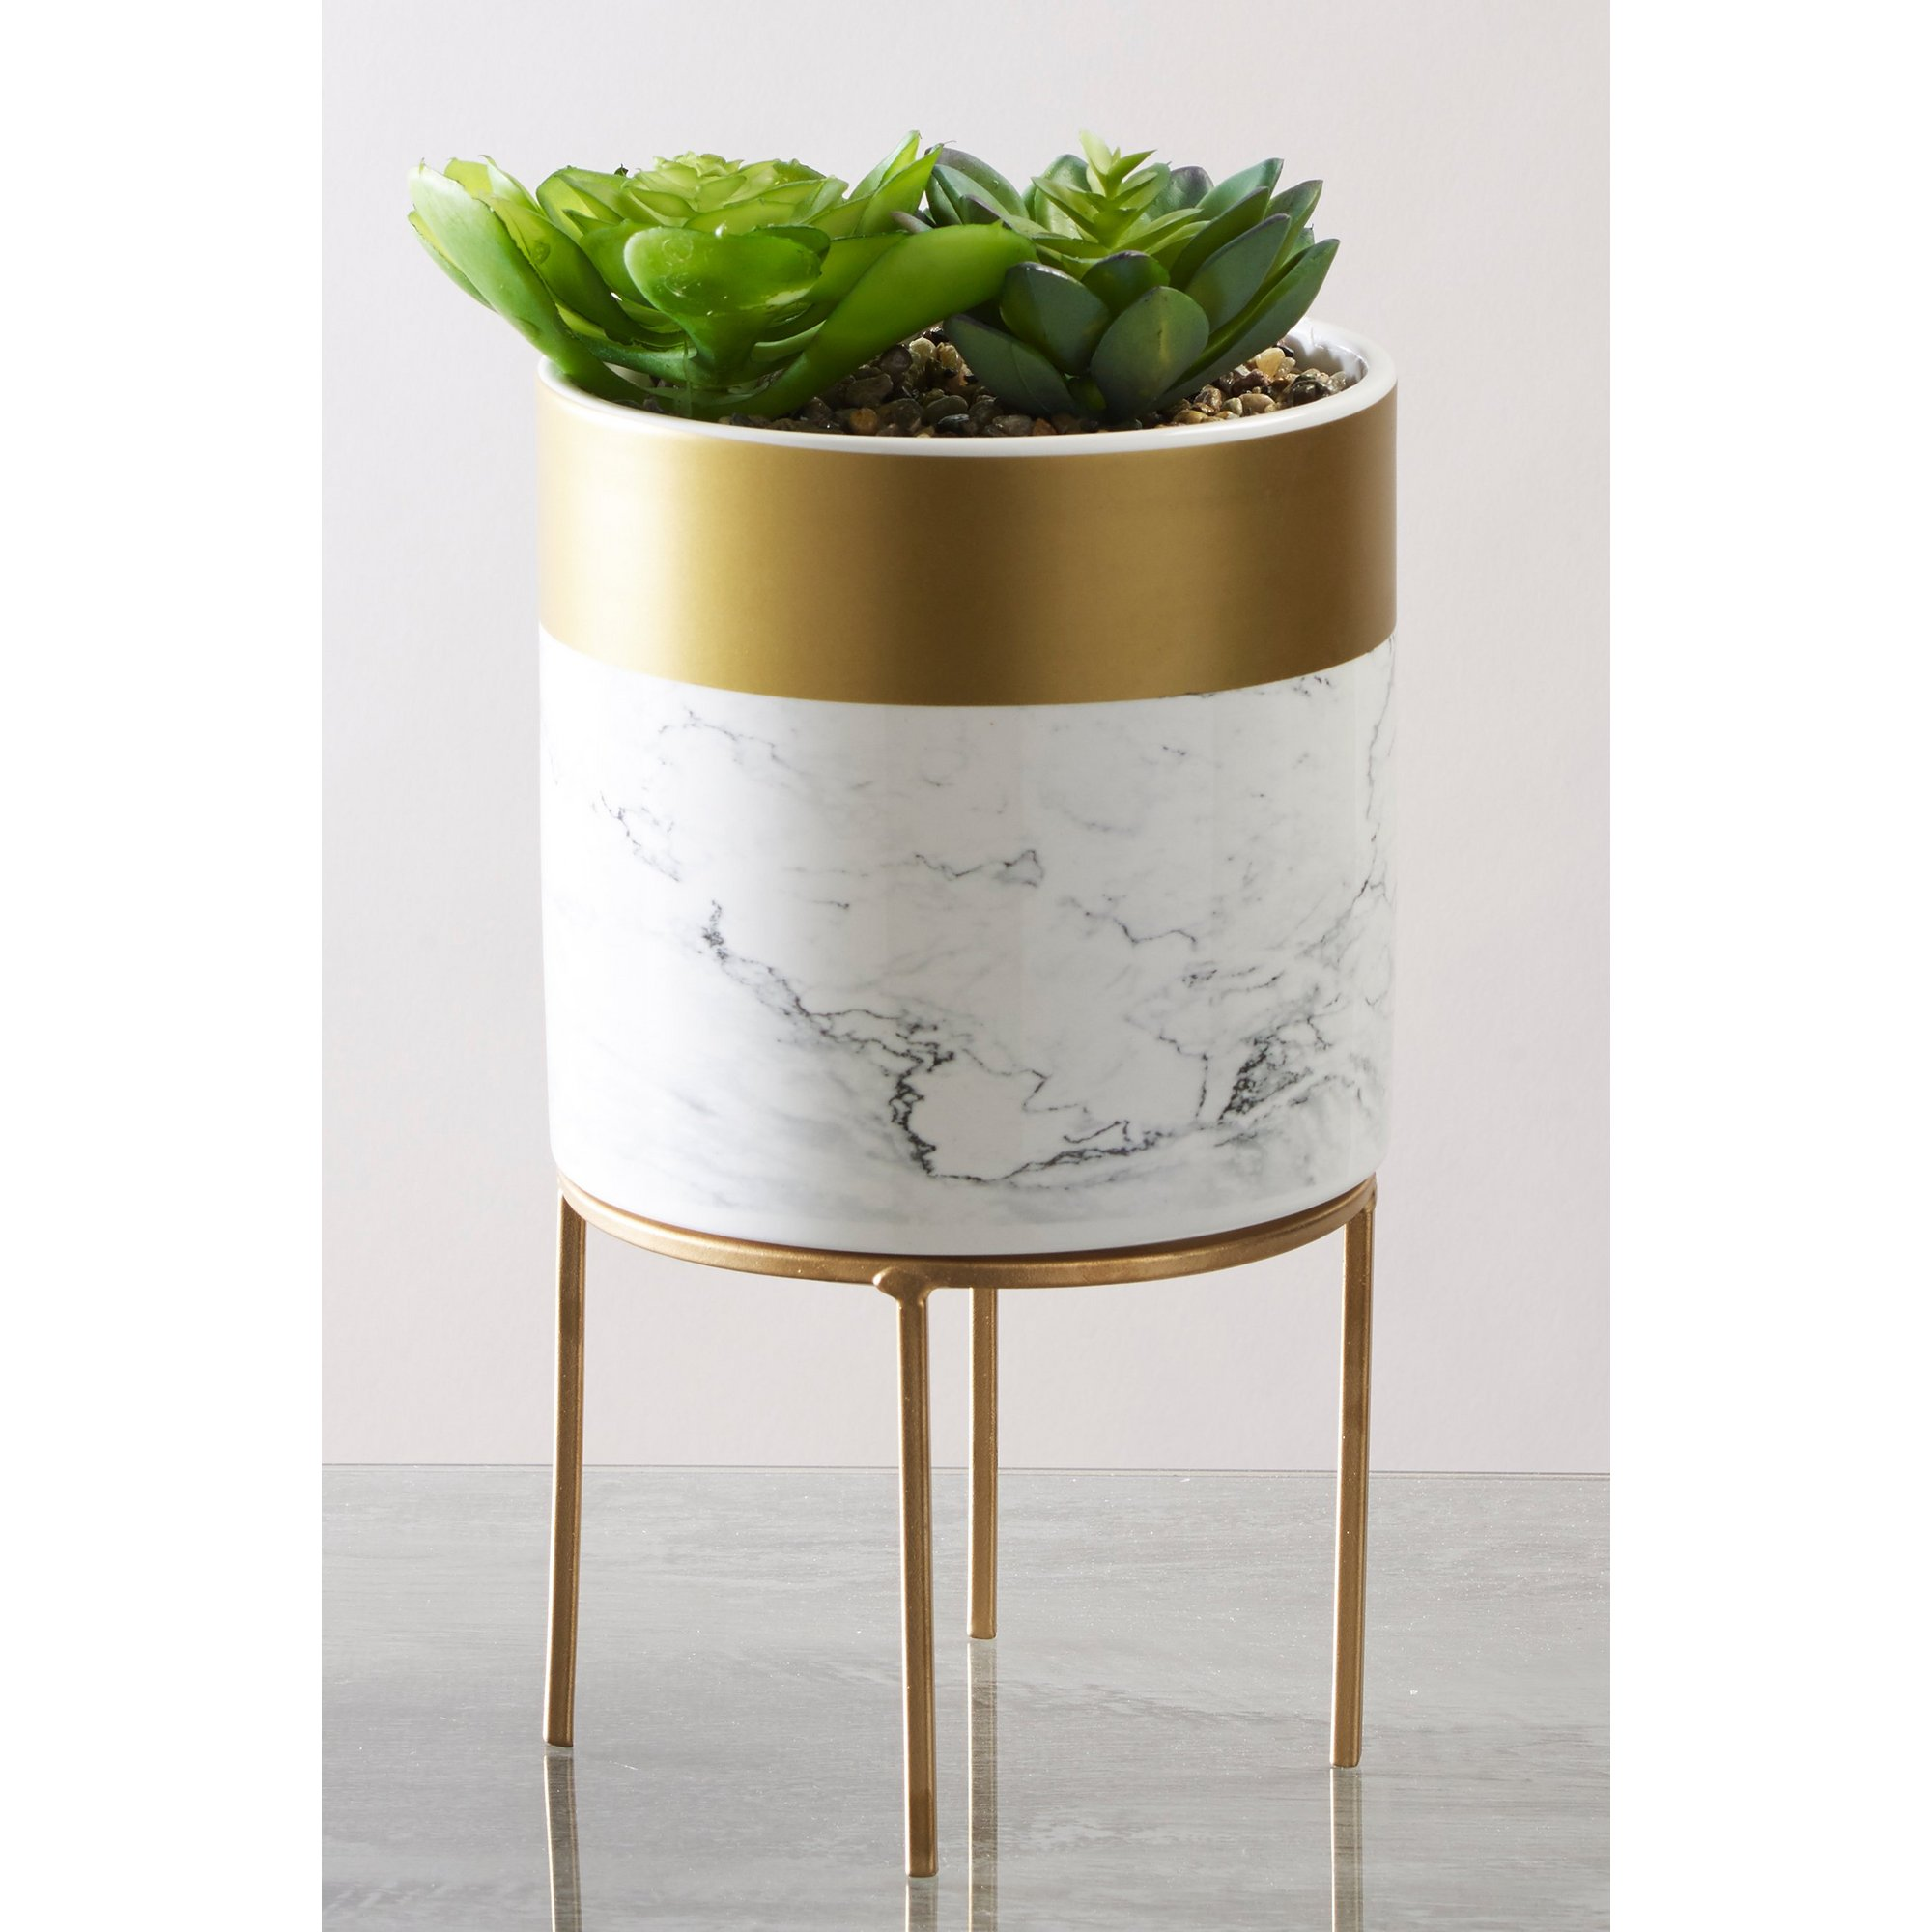 Image of Marble and Gold Look Planter and Succulent